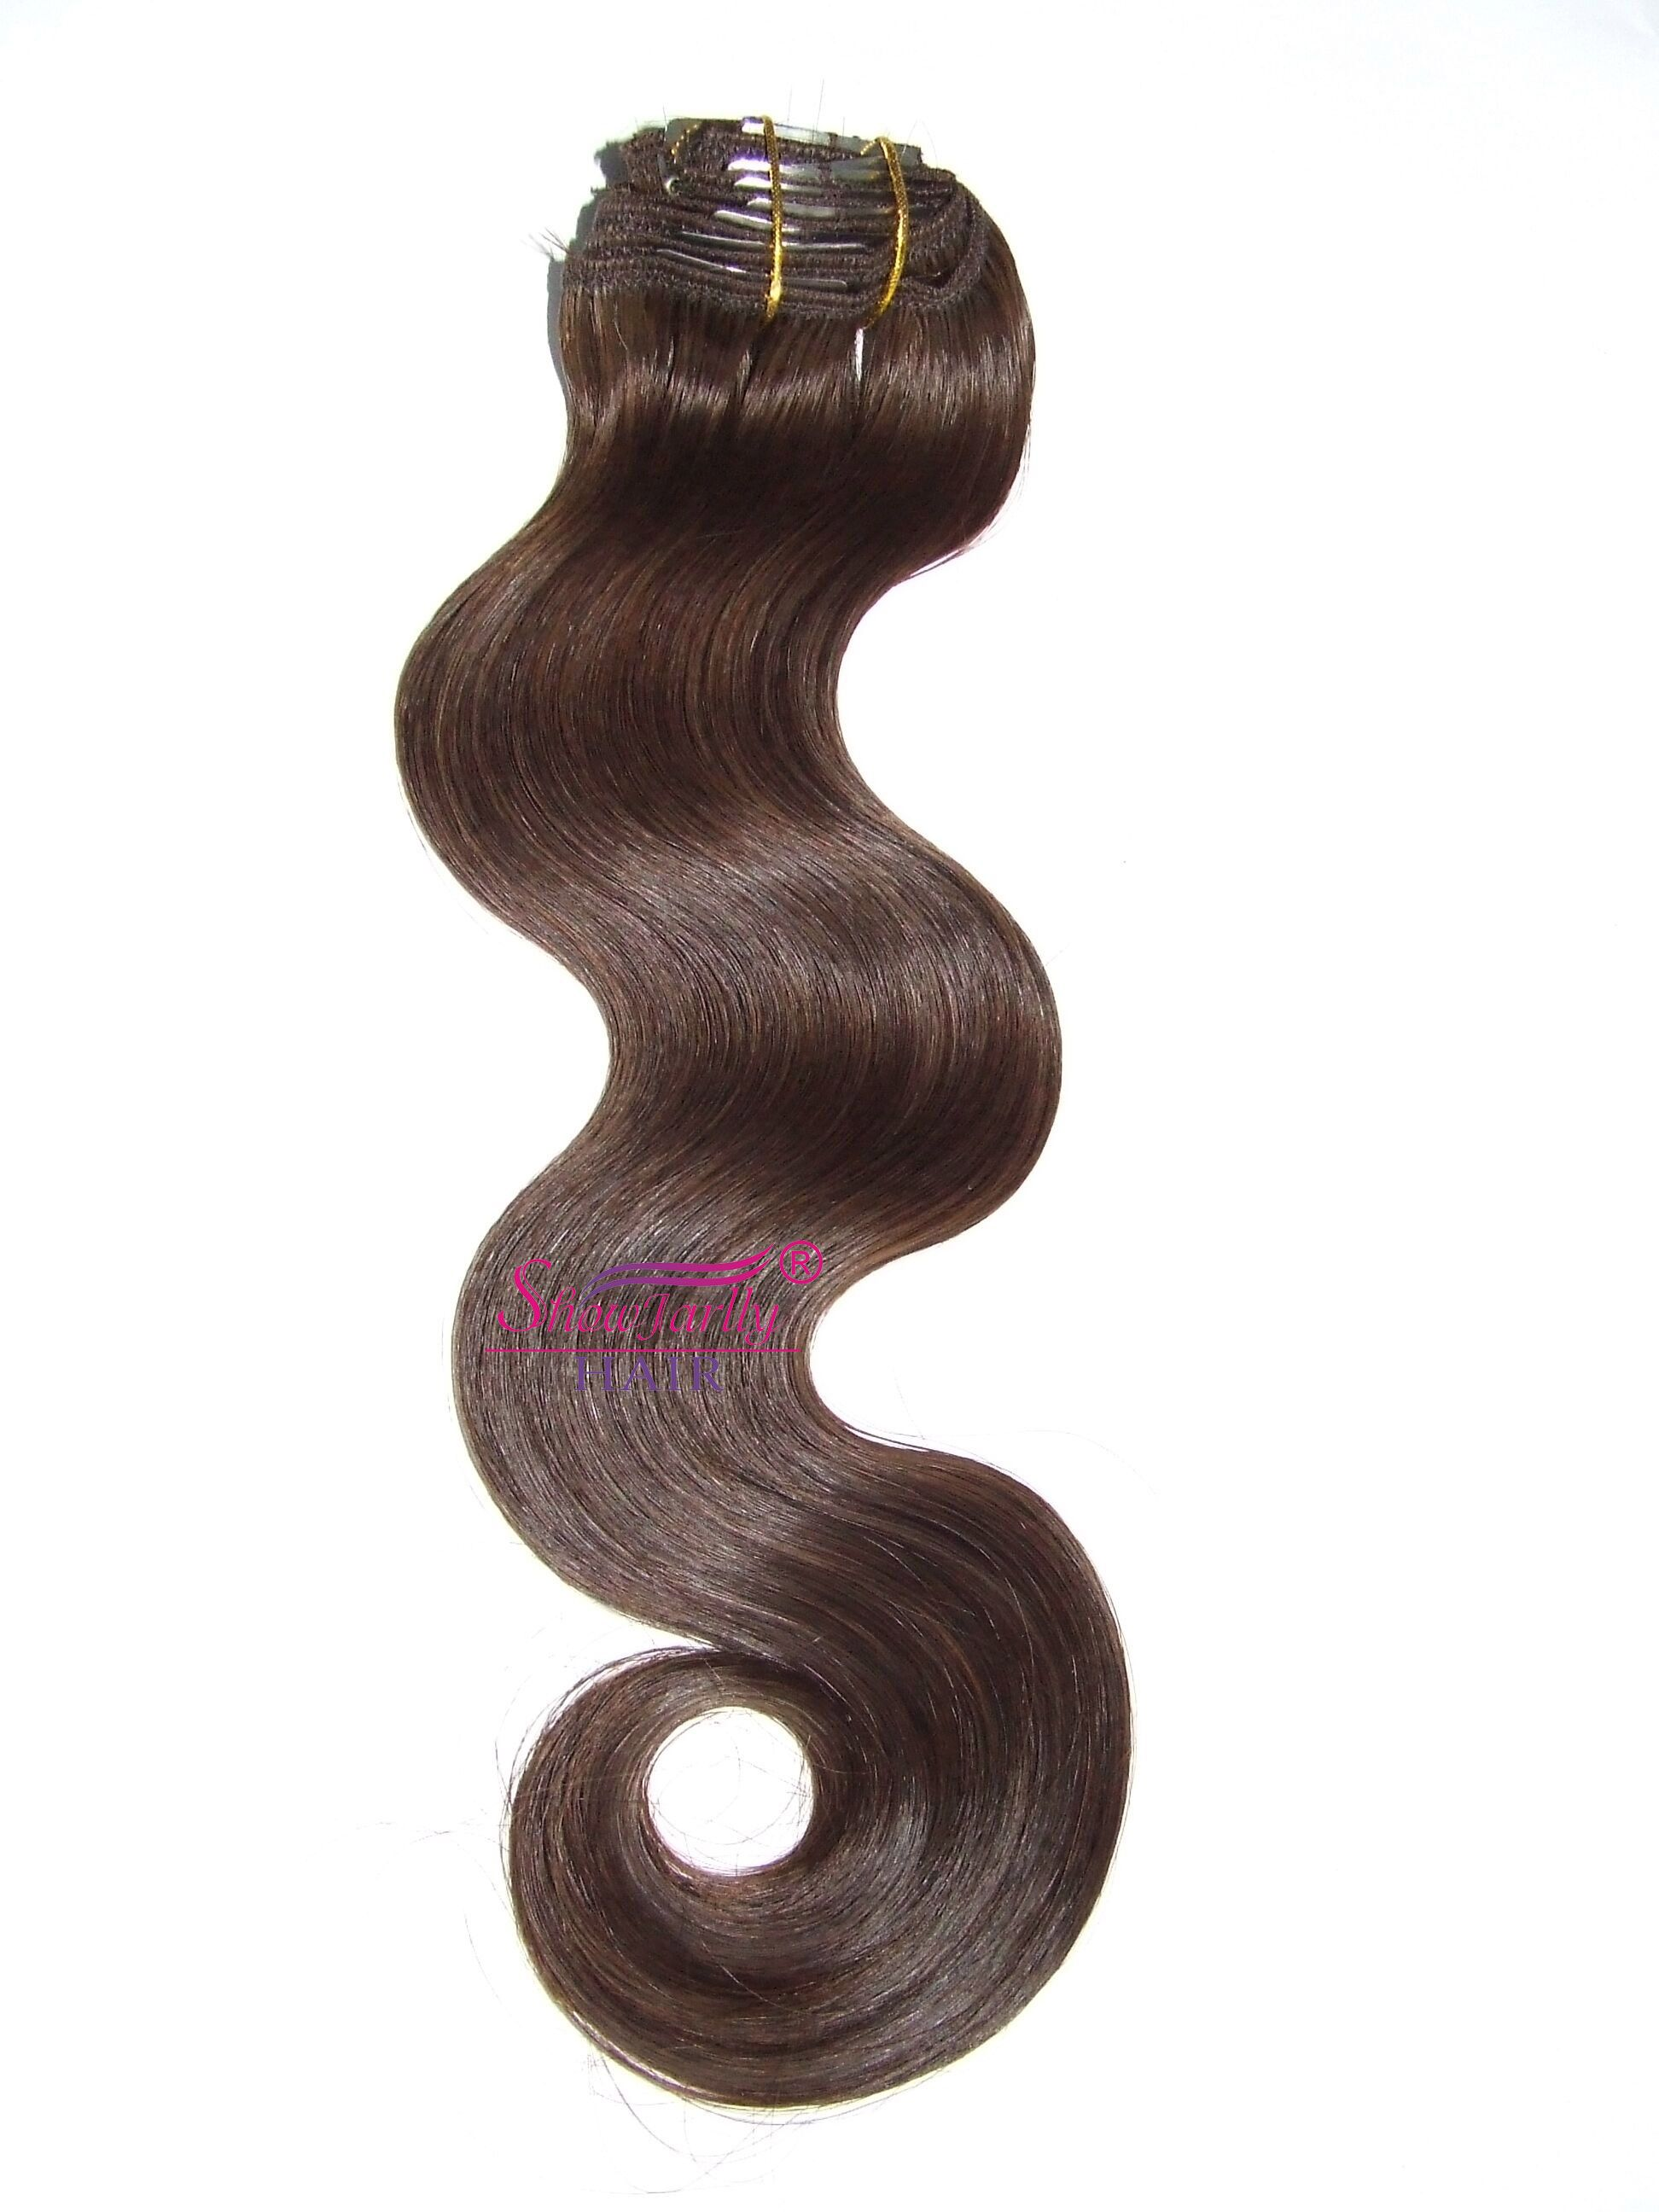 Big Body Wave Clip In Hair Extensions Only Contact Me For More